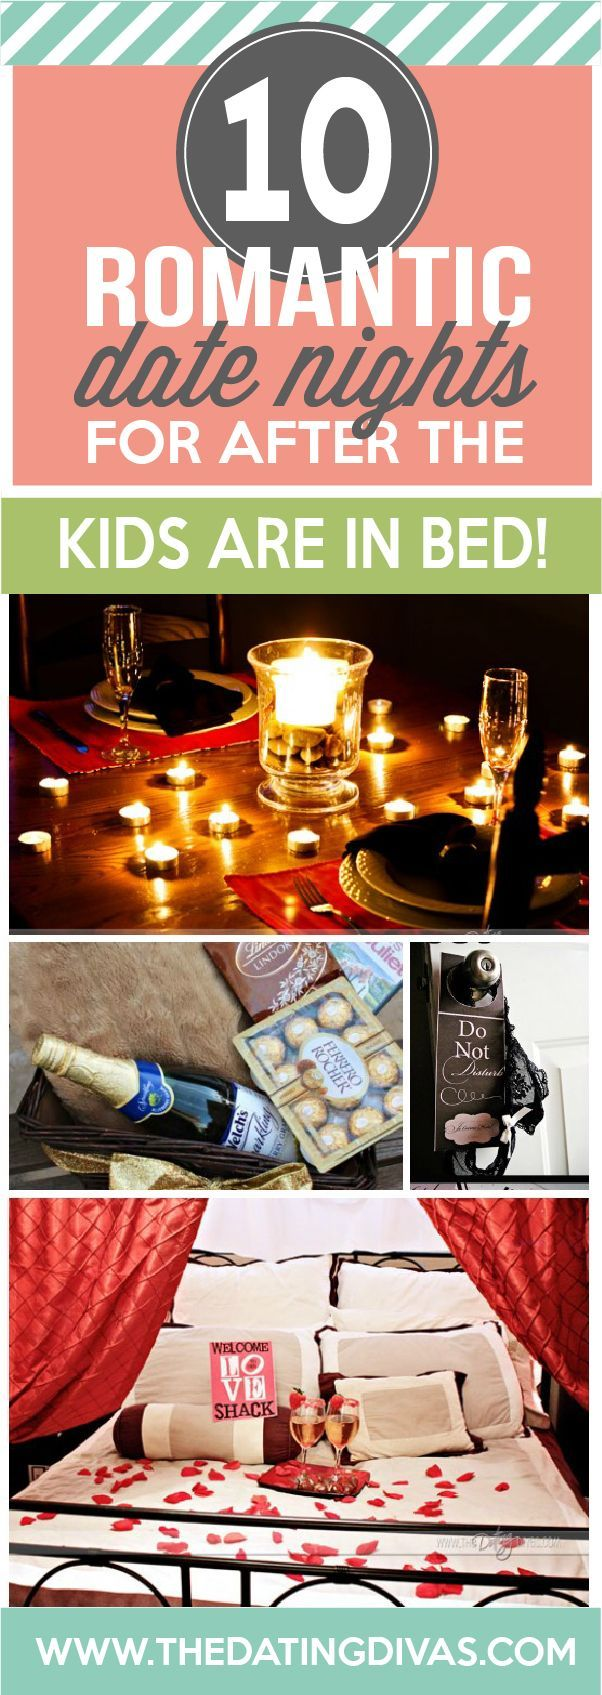 45 At Home Date Night Ideas for AFTER the Kids are in Bed!